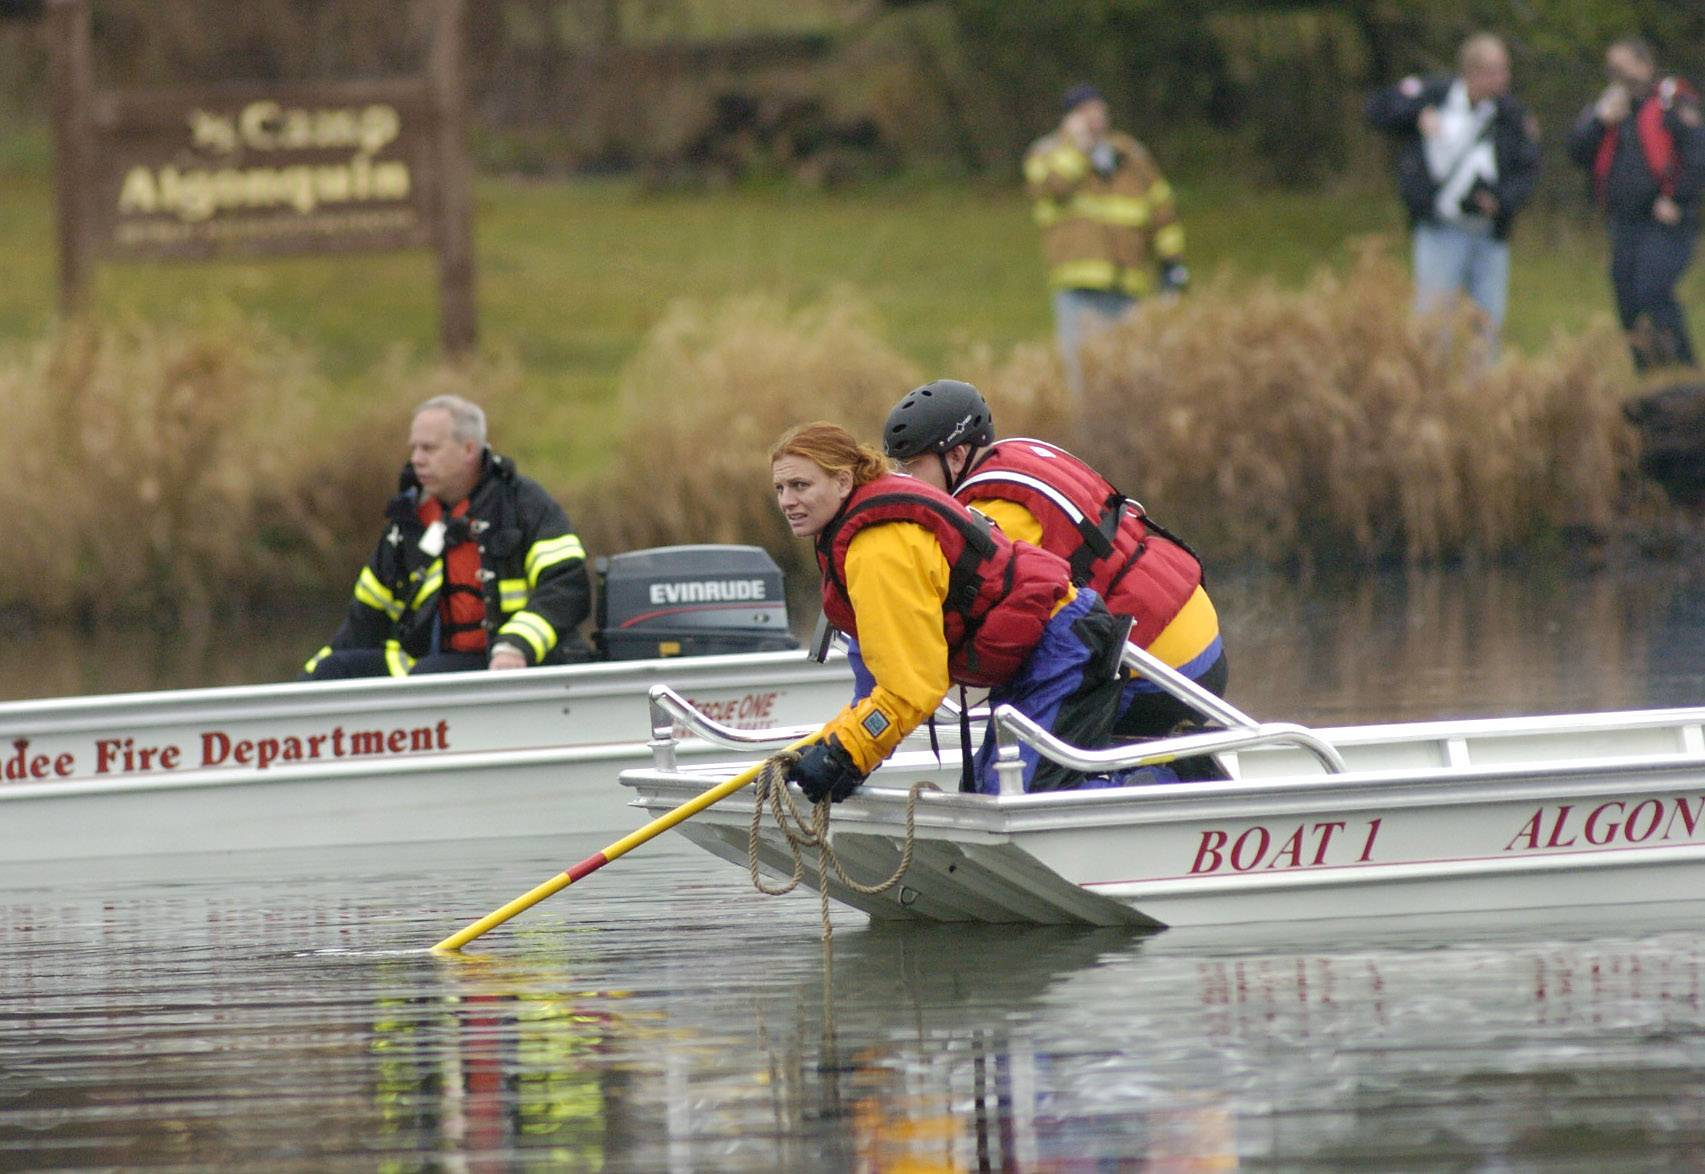 Police search for drowning victims in the Fox River outside Camp Algonquin in 2008.